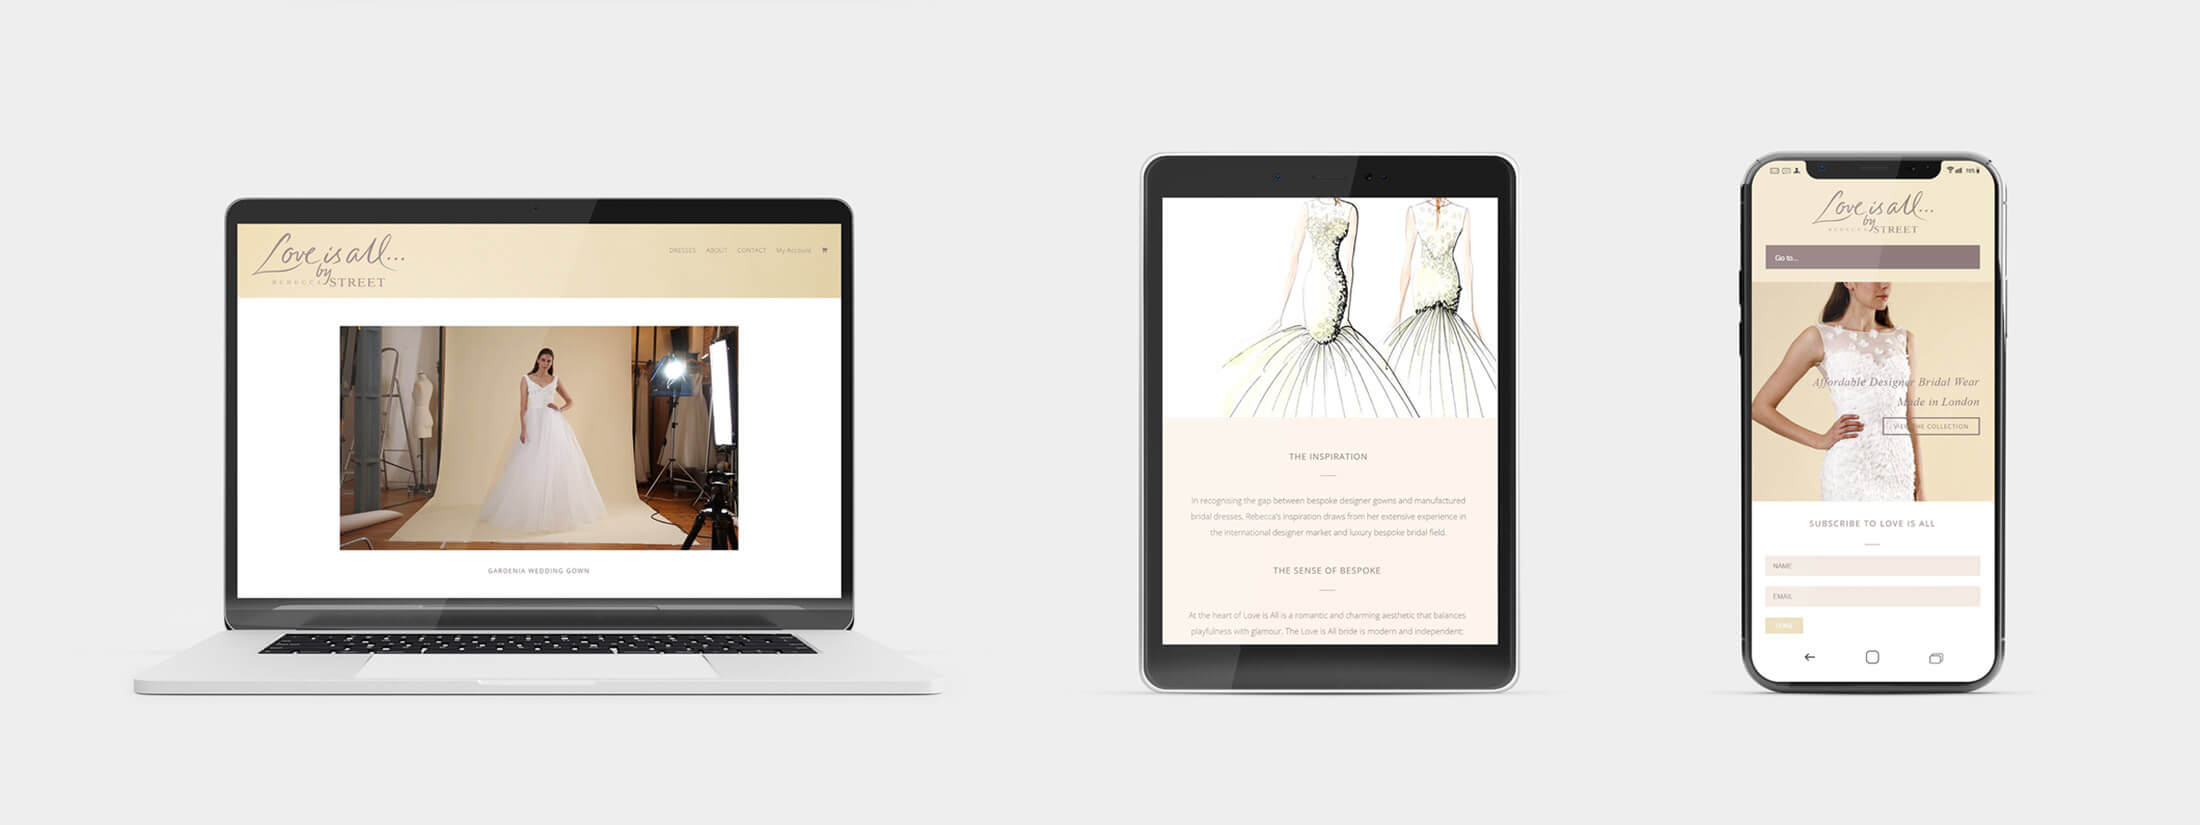 Responsive Web Design on Various Devices - For a Wedding Business